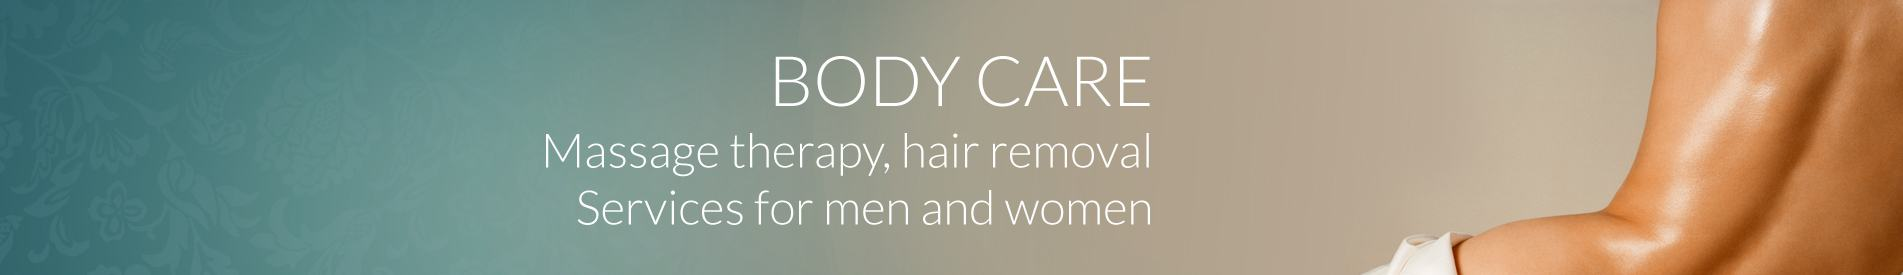 Body Care Services- Massages, Hair Removal